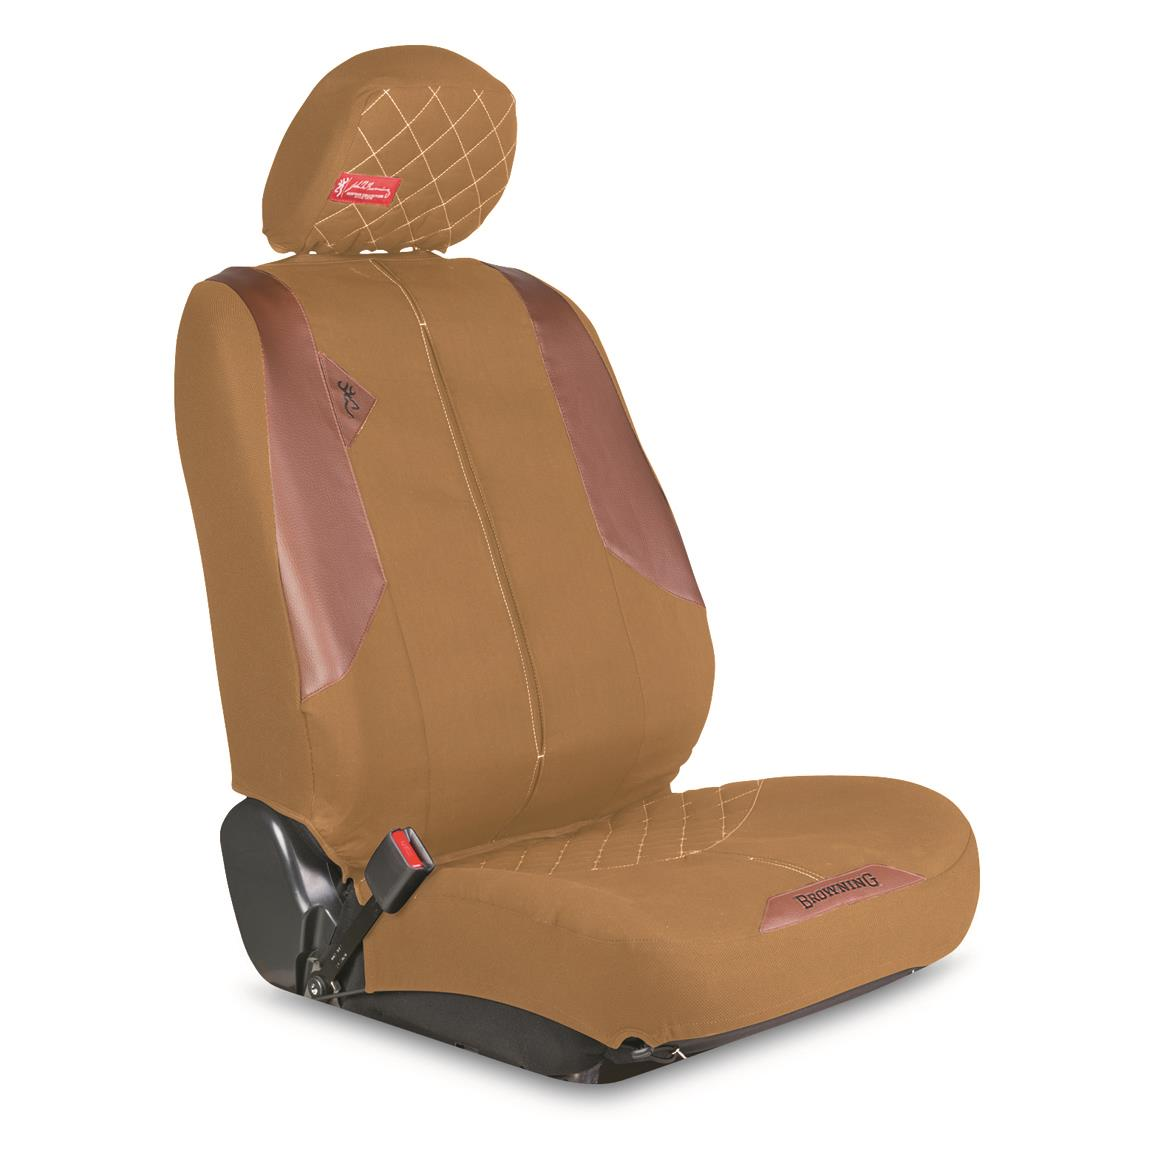 Headrest cover features a hook and loop attachment for a clean fit